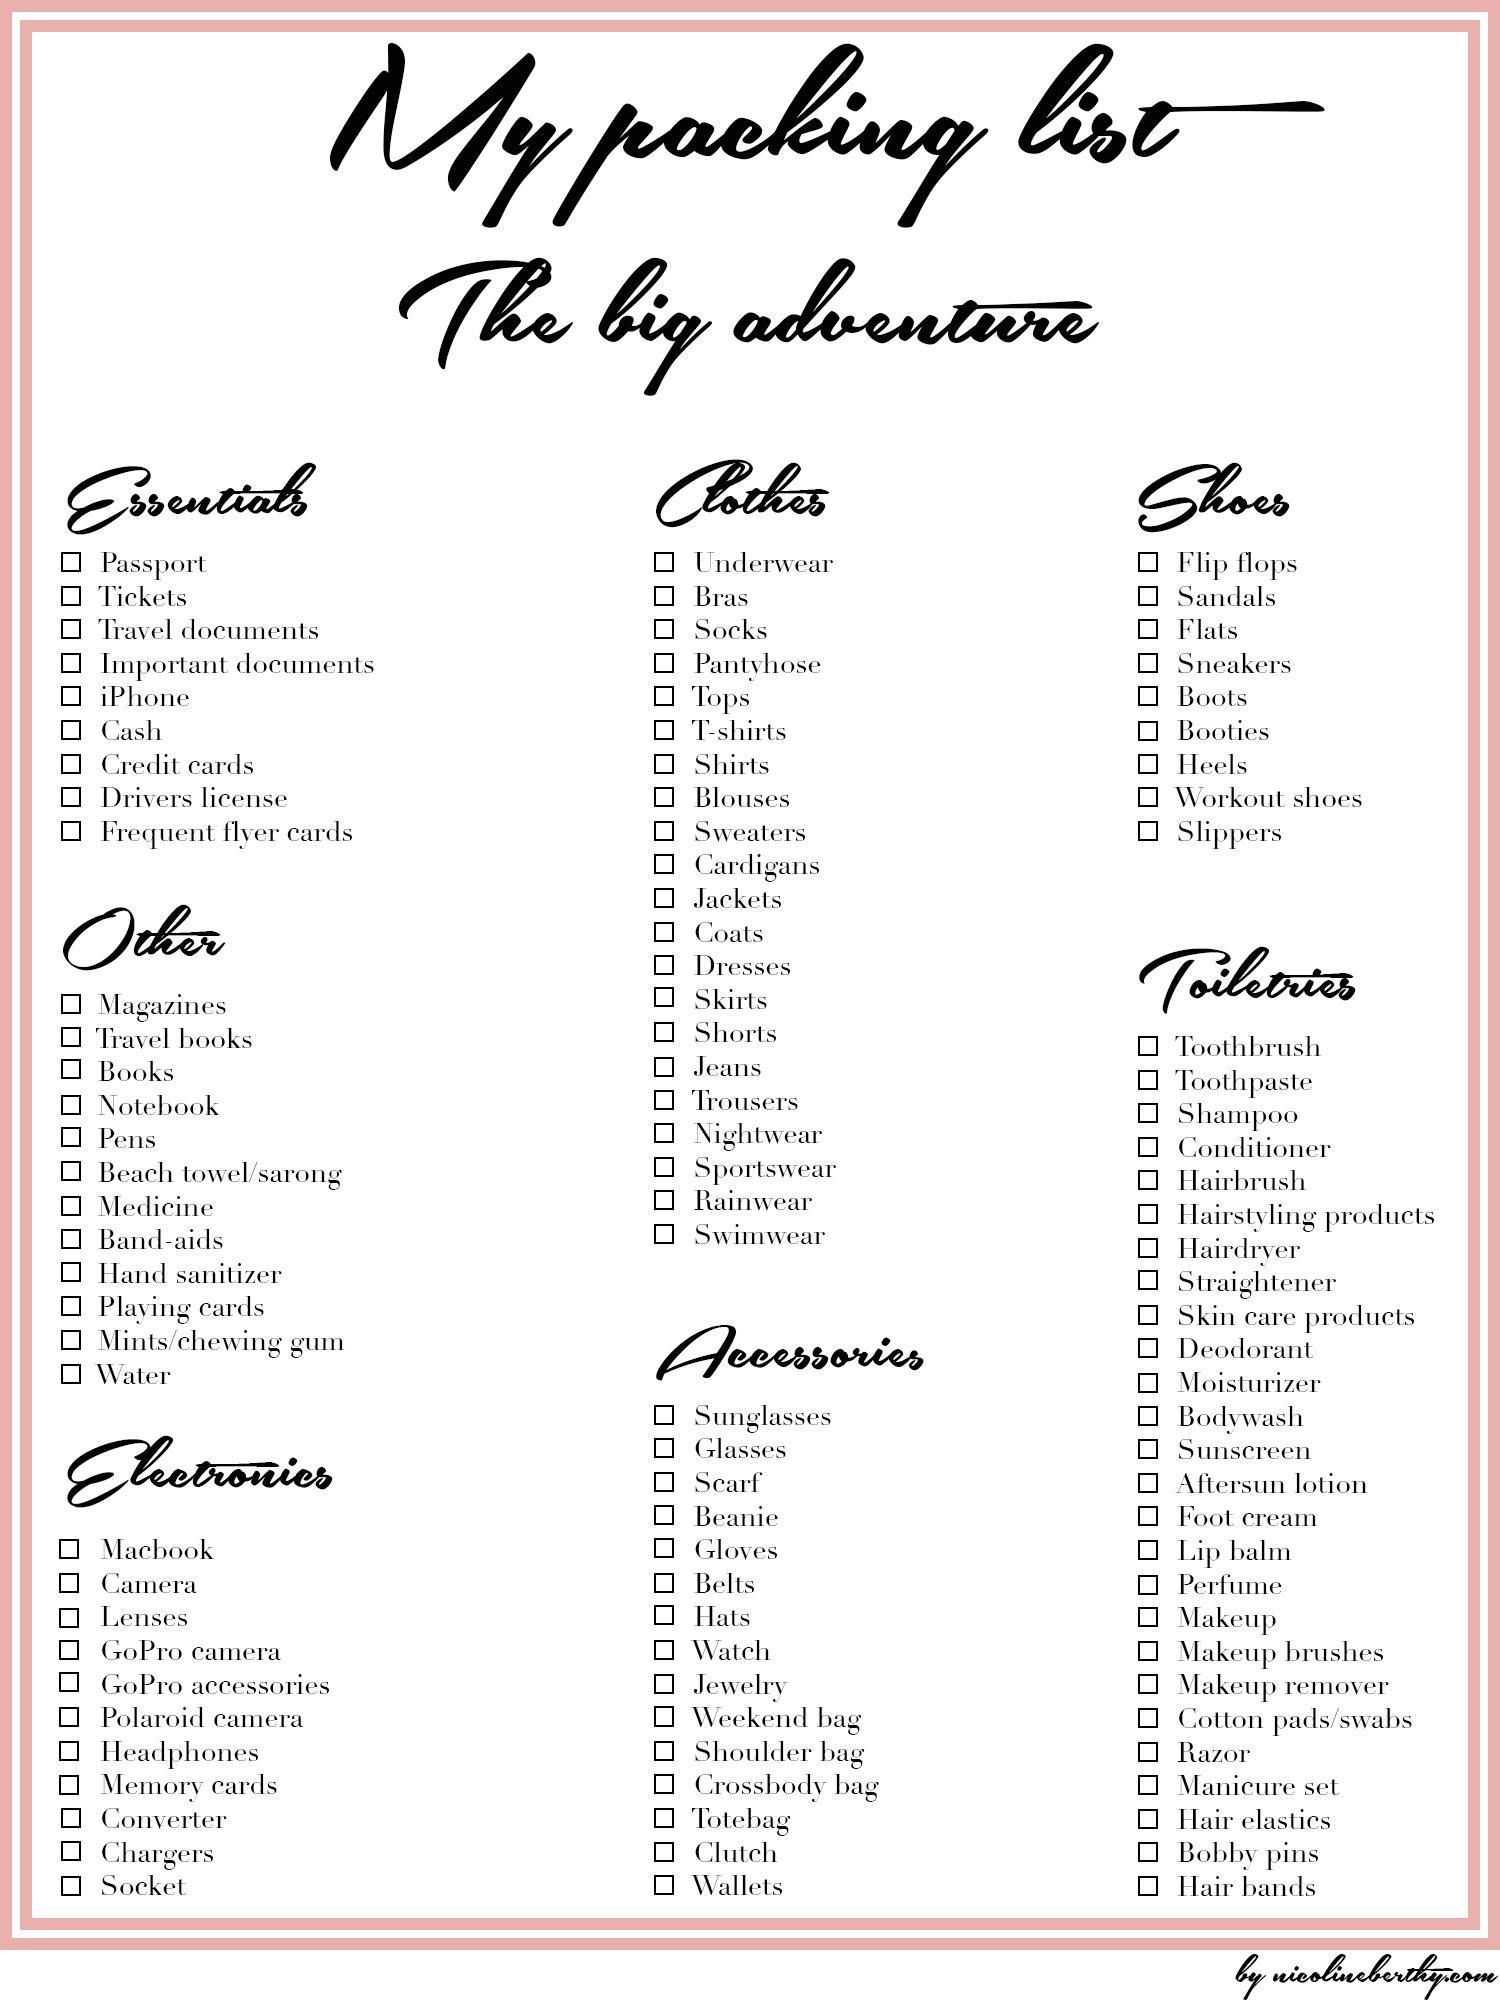 My packing list: The big adventure